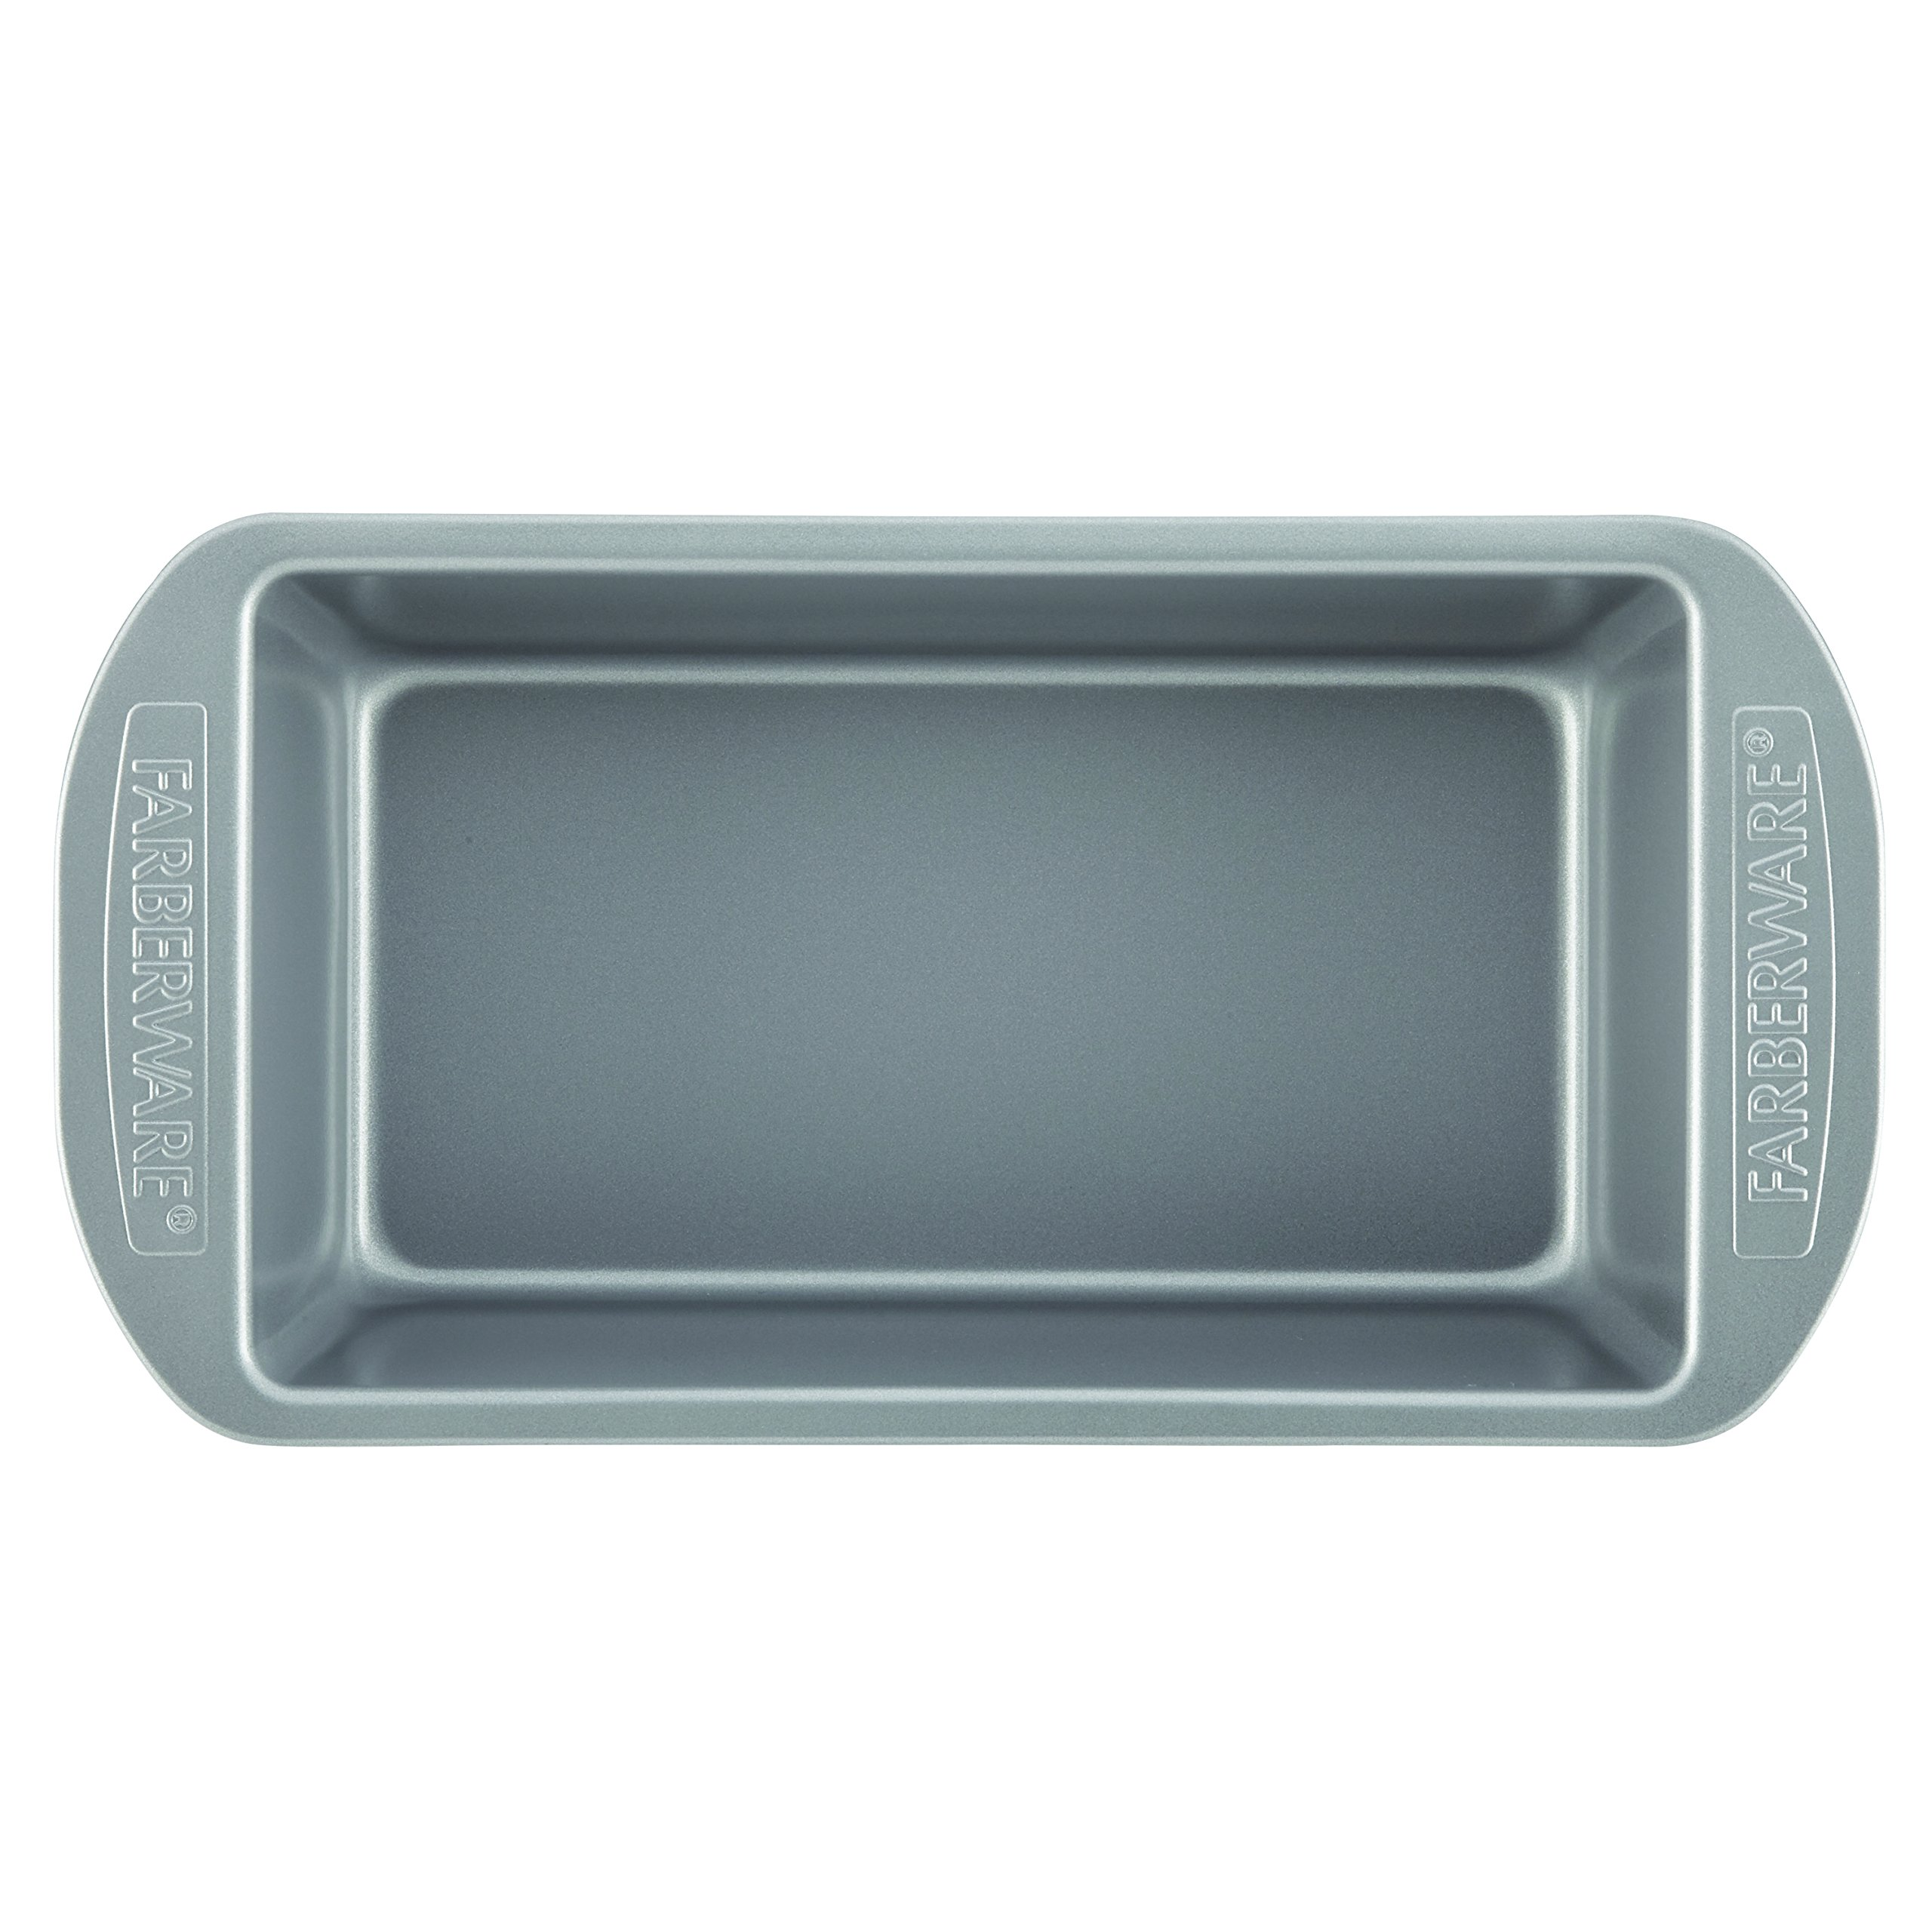 Farberware Nonstick Bakeware Bread and Meat Loaf Pan Set, 2-Piece, Gray by Farberware (Image #3)